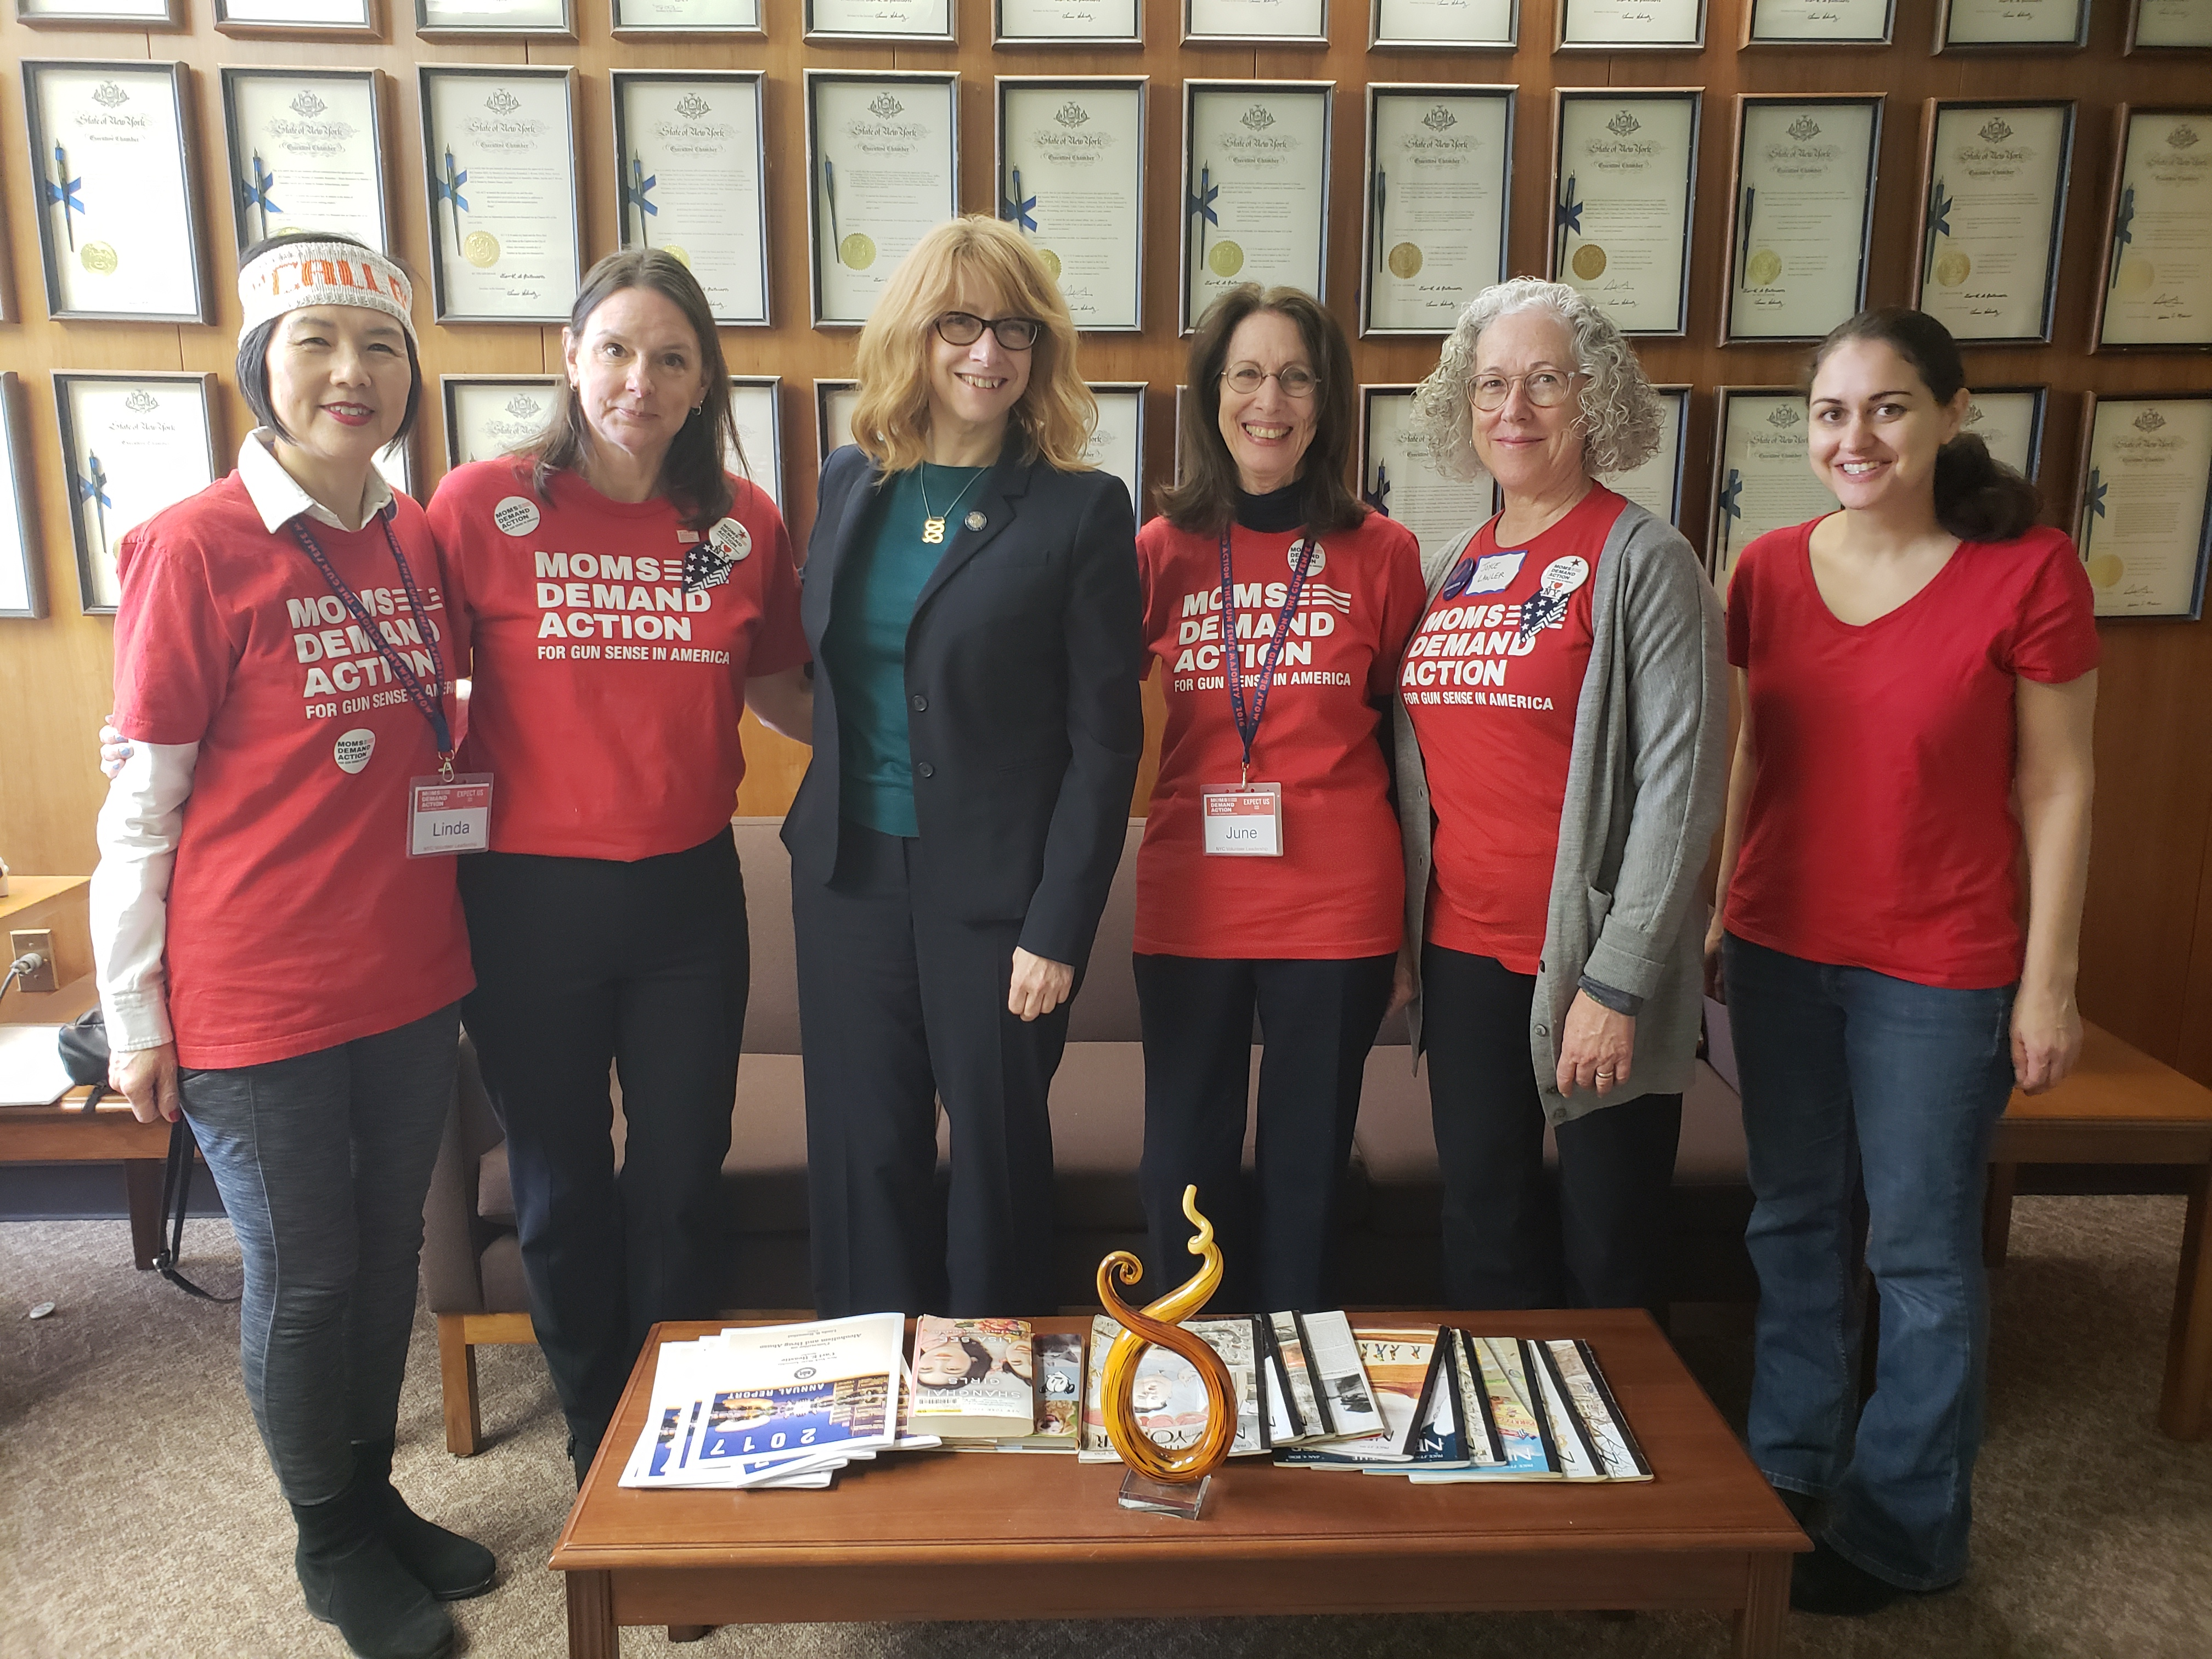 Moms Assemblymember Linda B. Rosenthal meets with Moms Demand Action for Gun Sense in America in Albany to discuss the need for tougher gun laws in New York State (L-R: Linda Dumm, Joyce Lawler, June Rubin, Diane Rinaldo).<br />&nbsp;